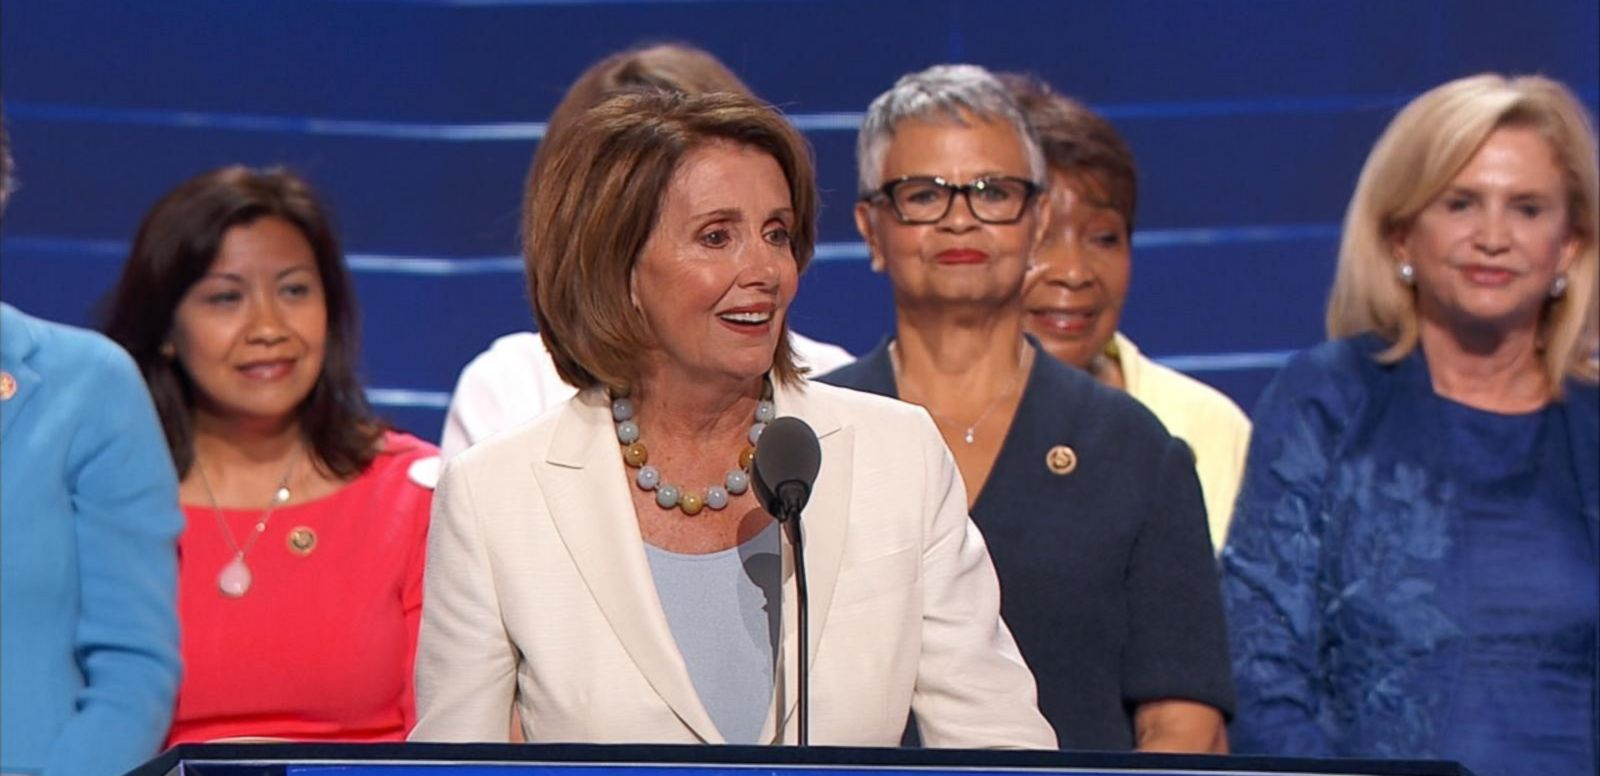 VIDEO: House Leader Nancy Pelosi Addresses the Democratic National Convention